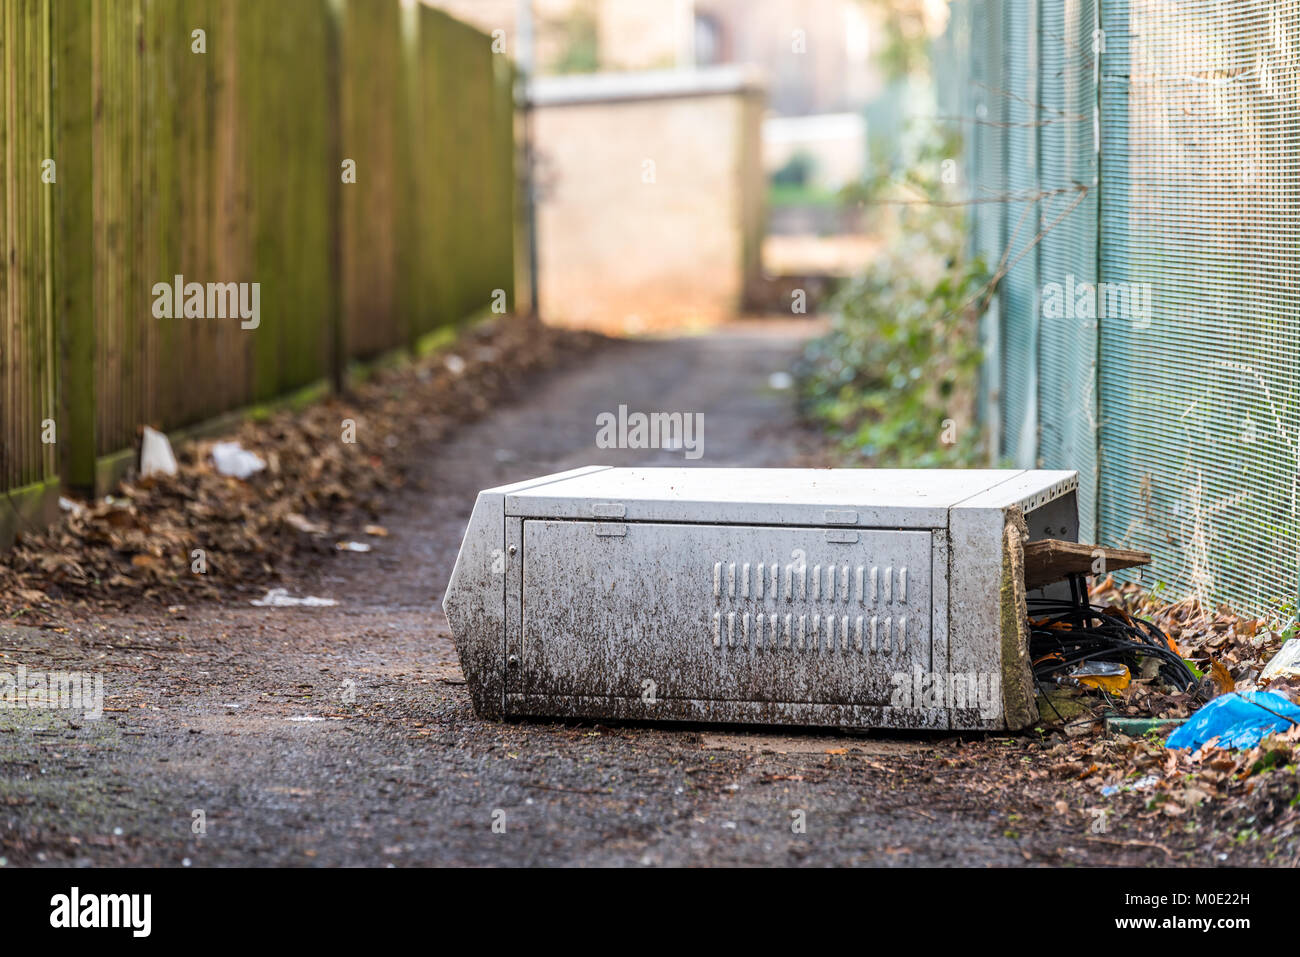 Electrical Box Stock Photos Images Alamy House Wiring Junction Fallen Broken Outdoors On Footpath With Cable Wires Exposed Image